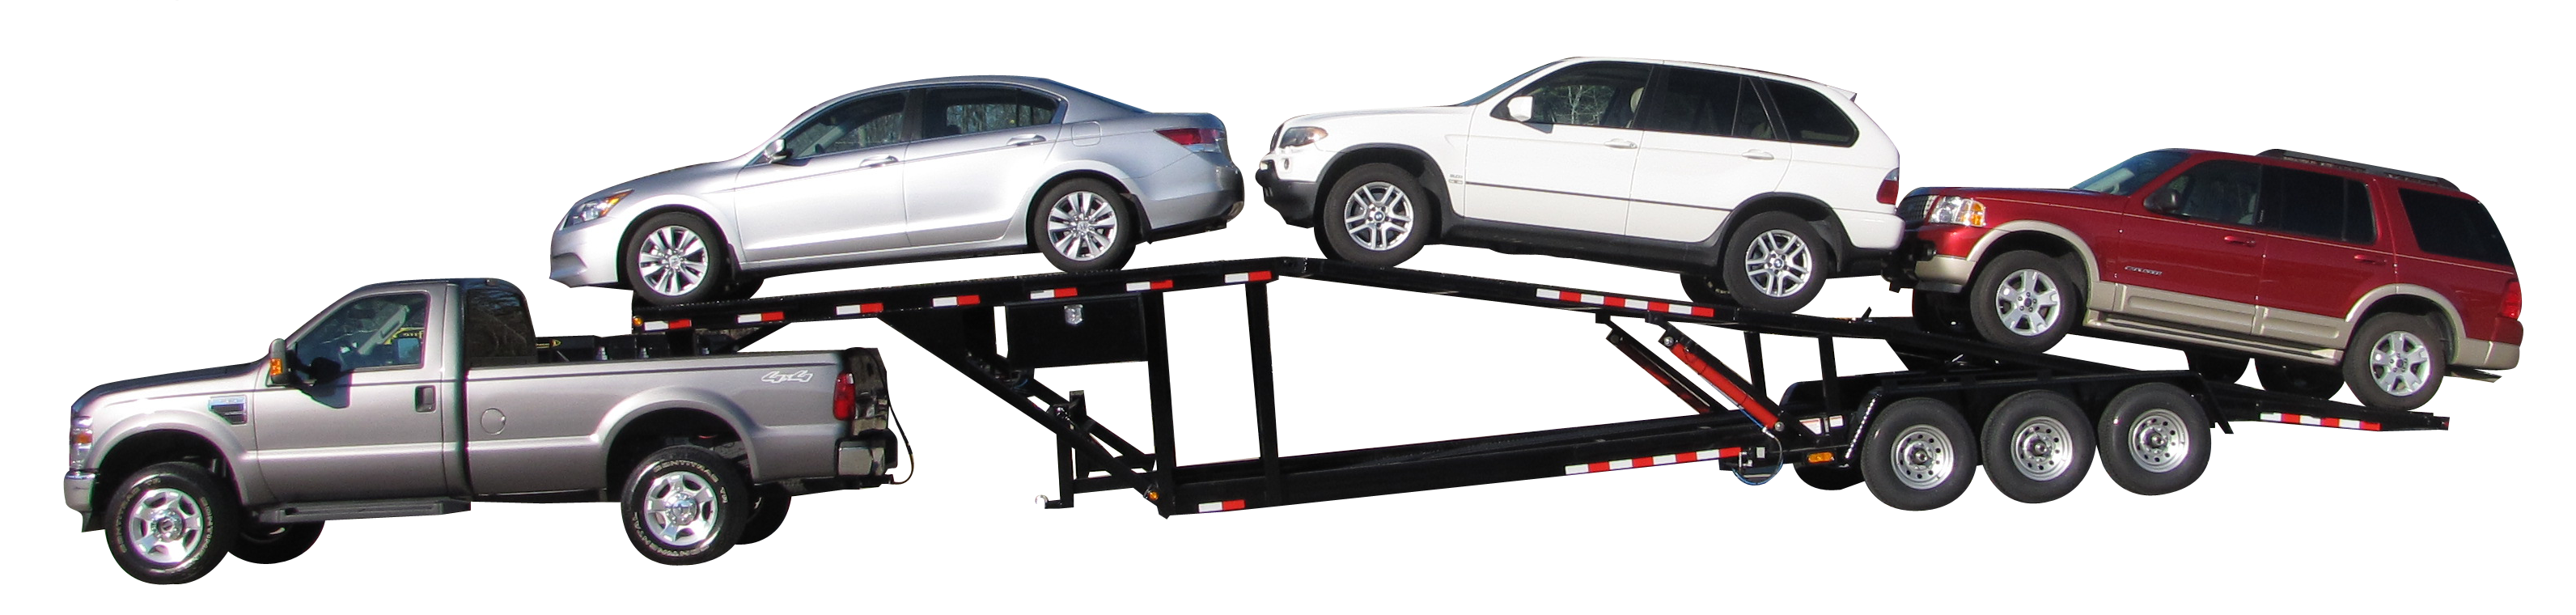 Four Car Trailer For Sale By Appalachian Trailers Call Today